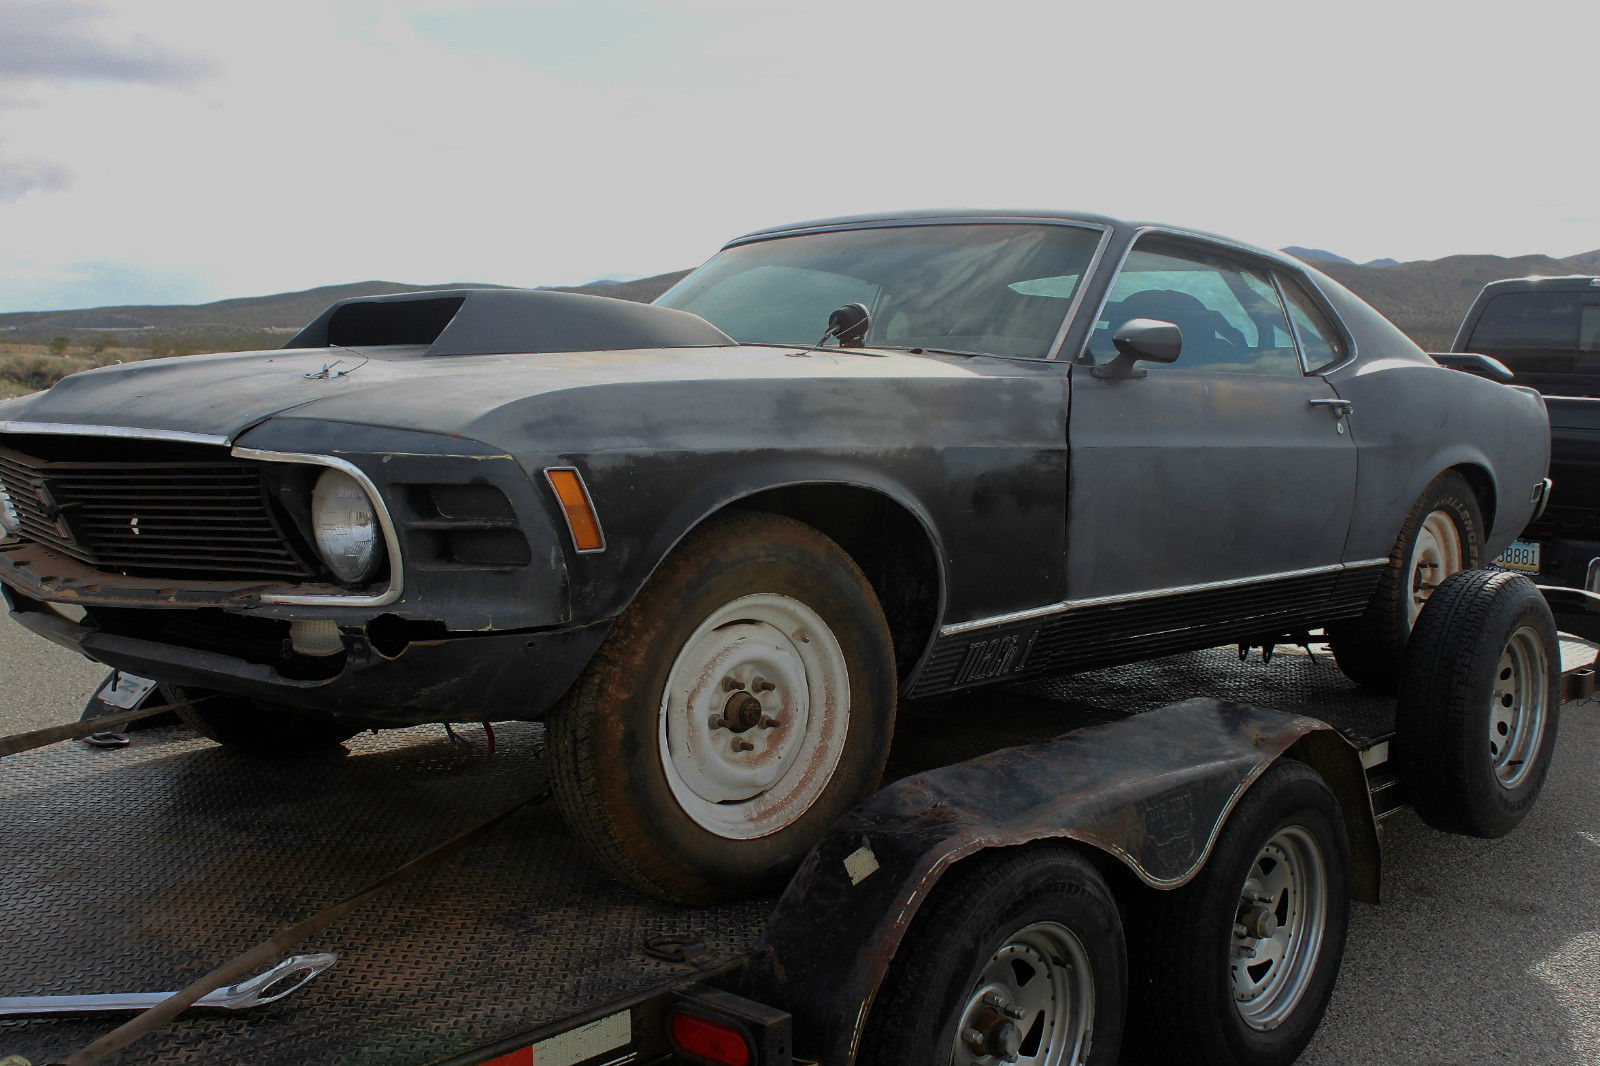 1970 Ford Mustang Mach 1 California Desert Car For Sale